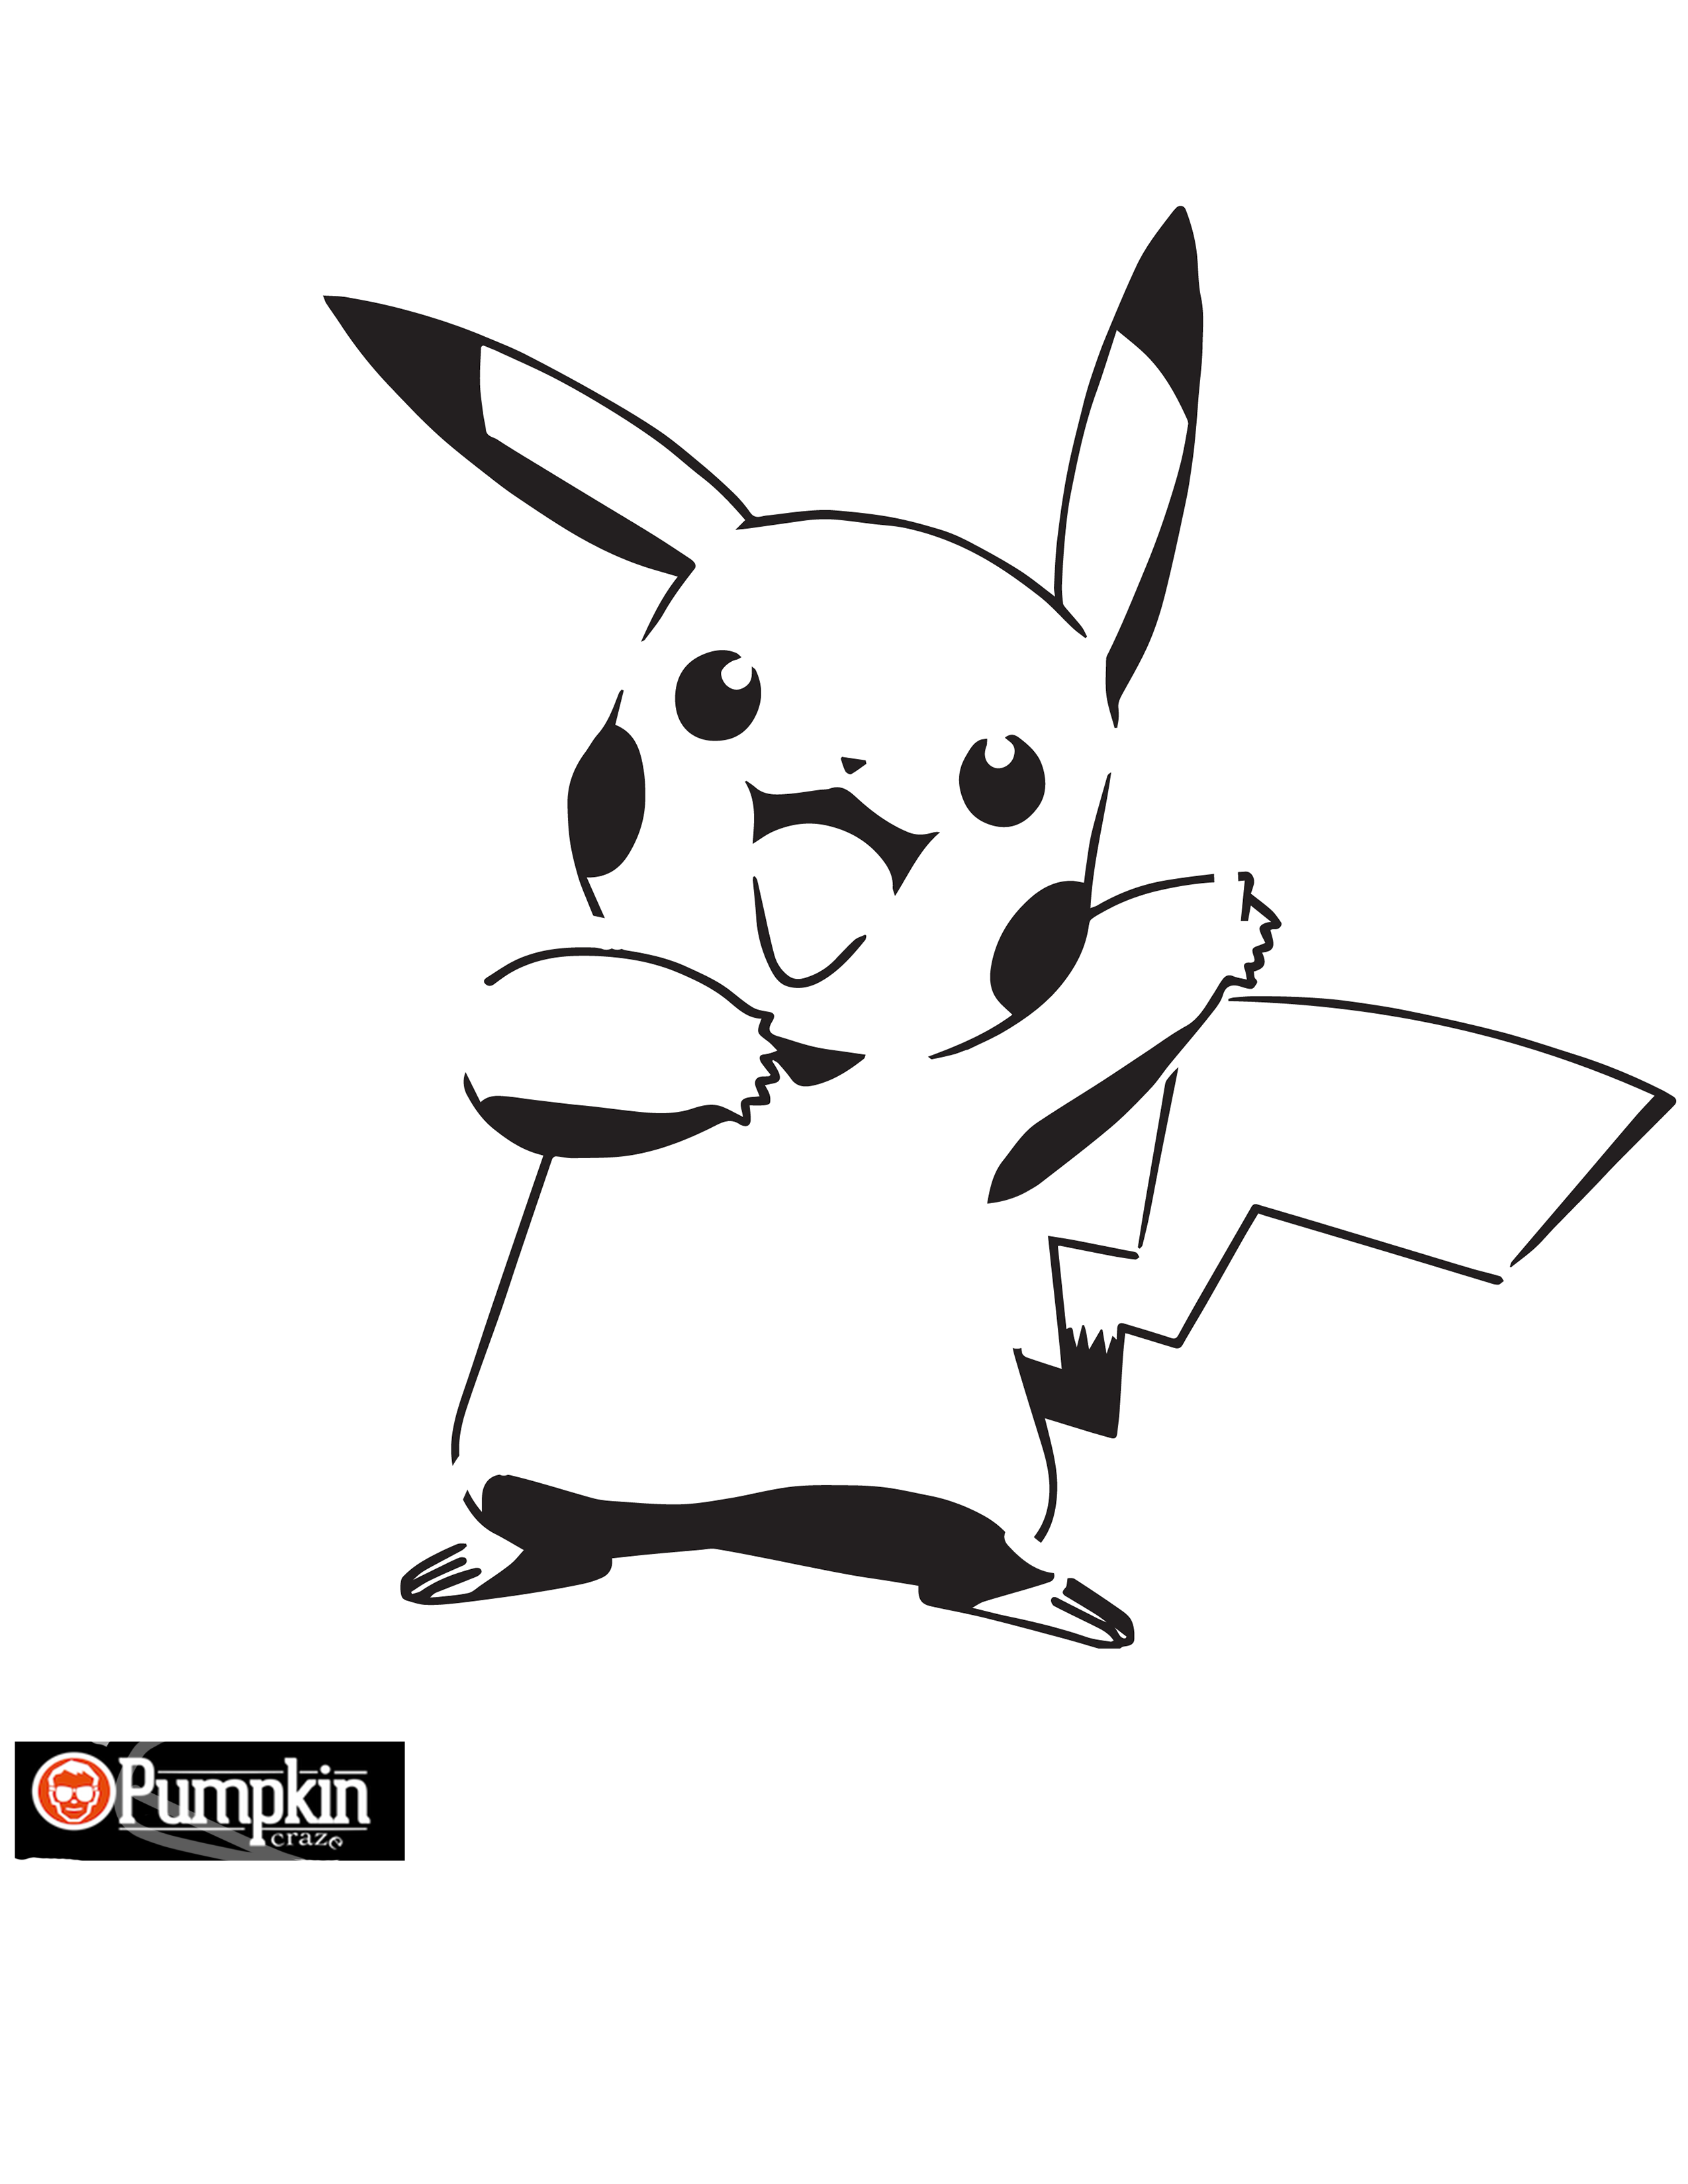 photo relating to Pokemon Stencils Printable named Pin by means of Joana Souza upon Halloween Pokemon pumpkin stencils